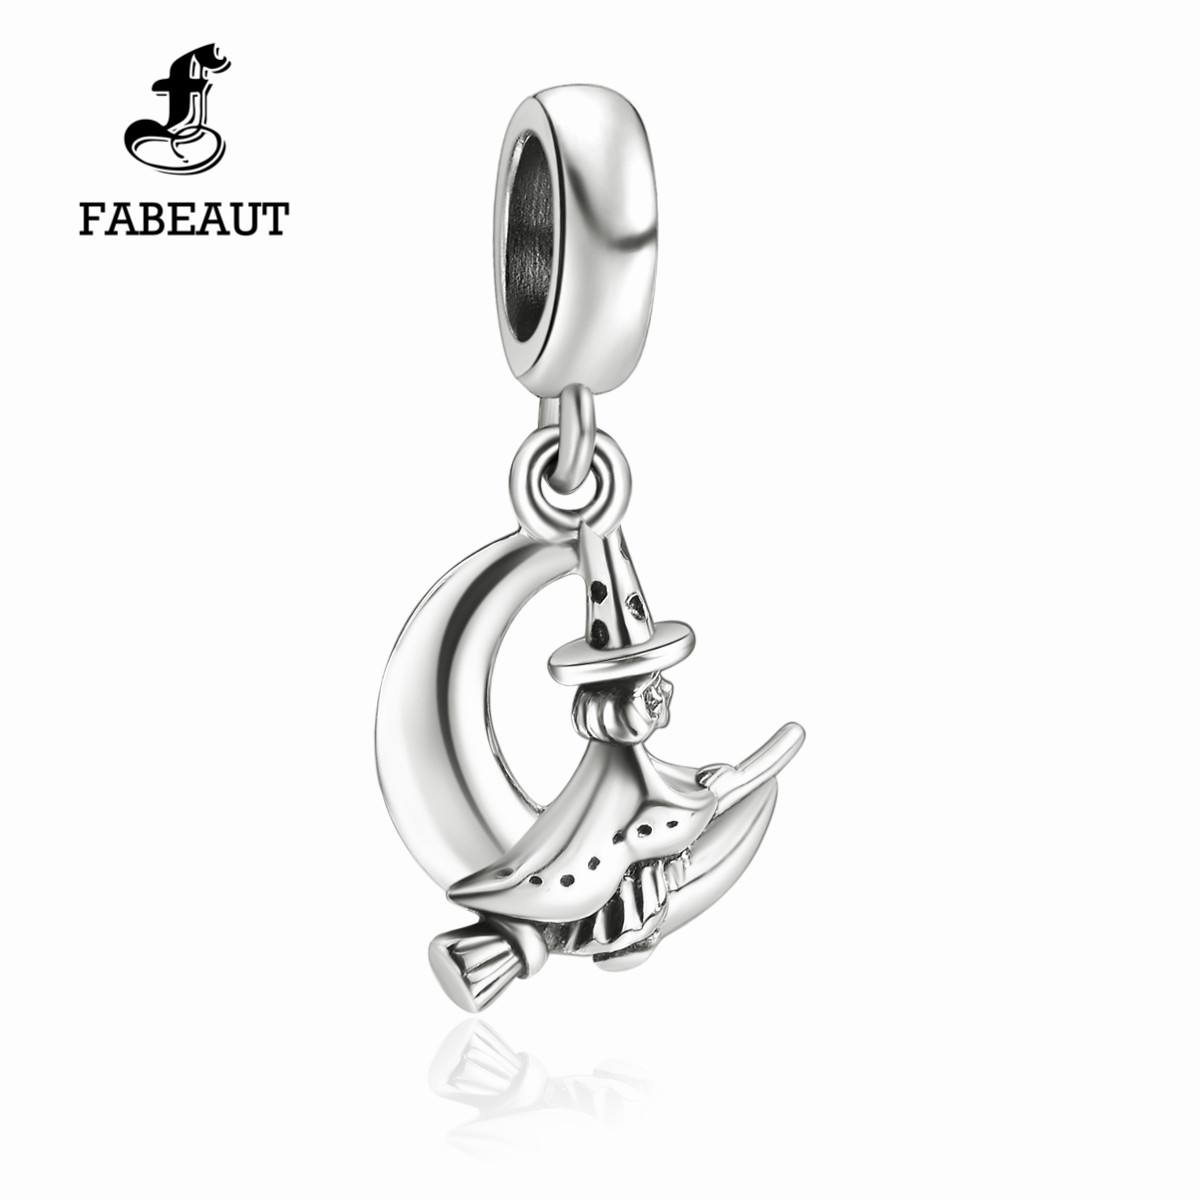 Fabeaaut fanbertis house in a hurry 925 sterling silver beads and pure silver bracelet as a gift for friends and sisters